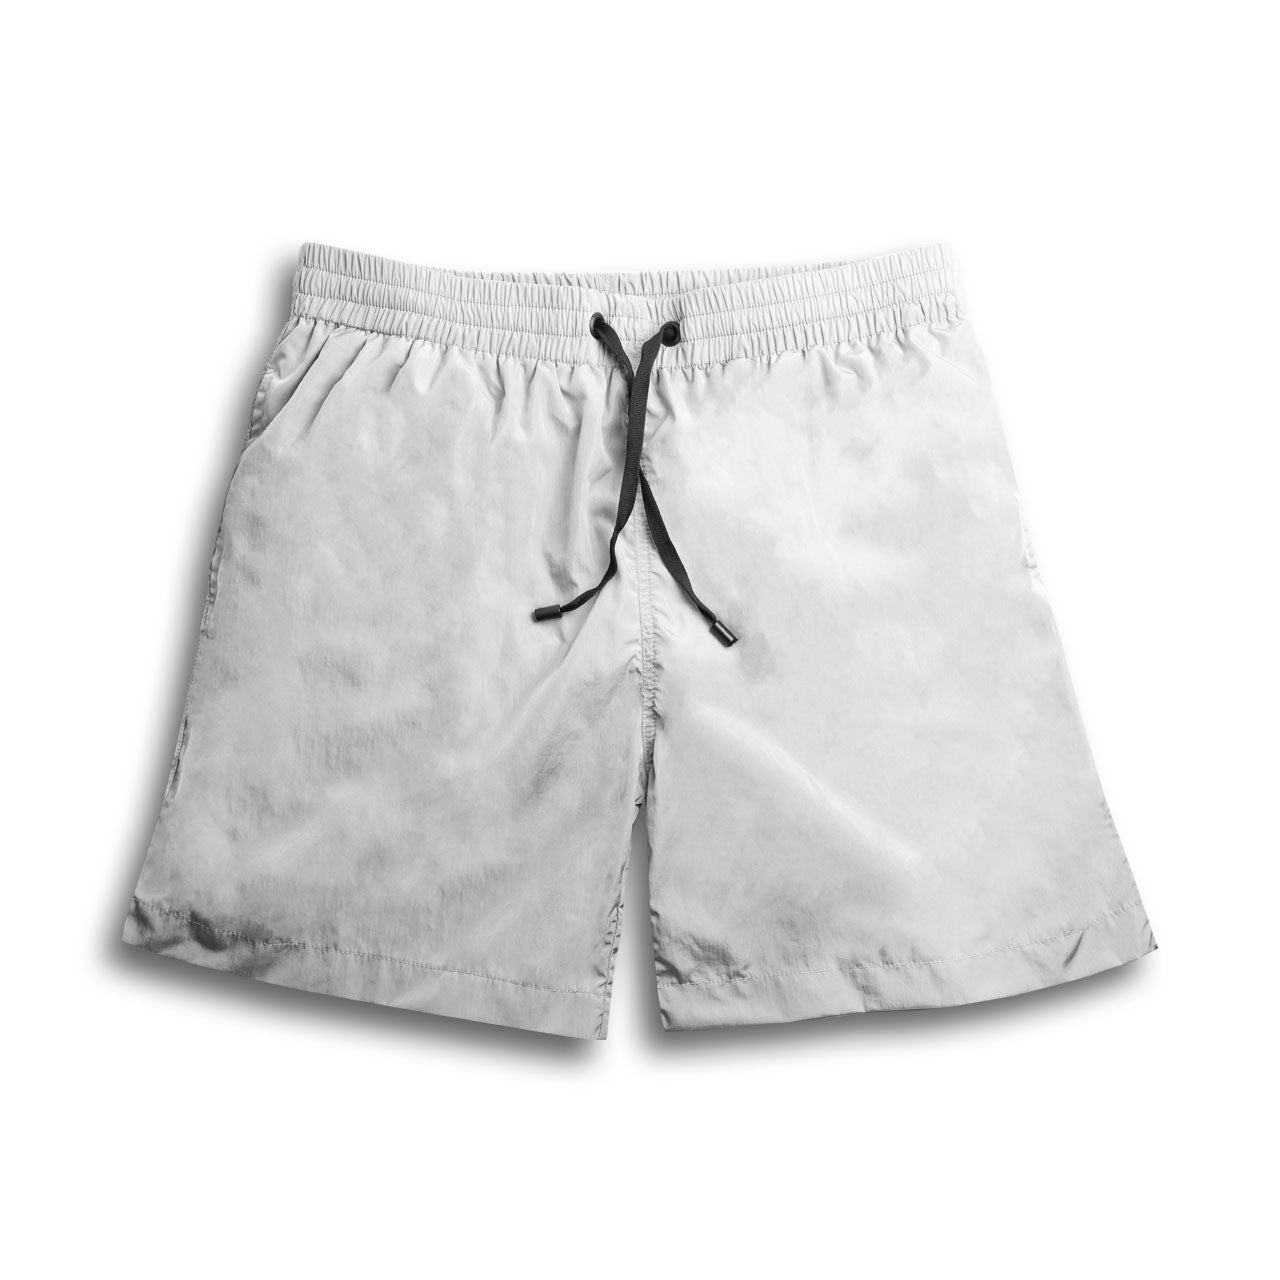 Everest Isles Swim Trunks